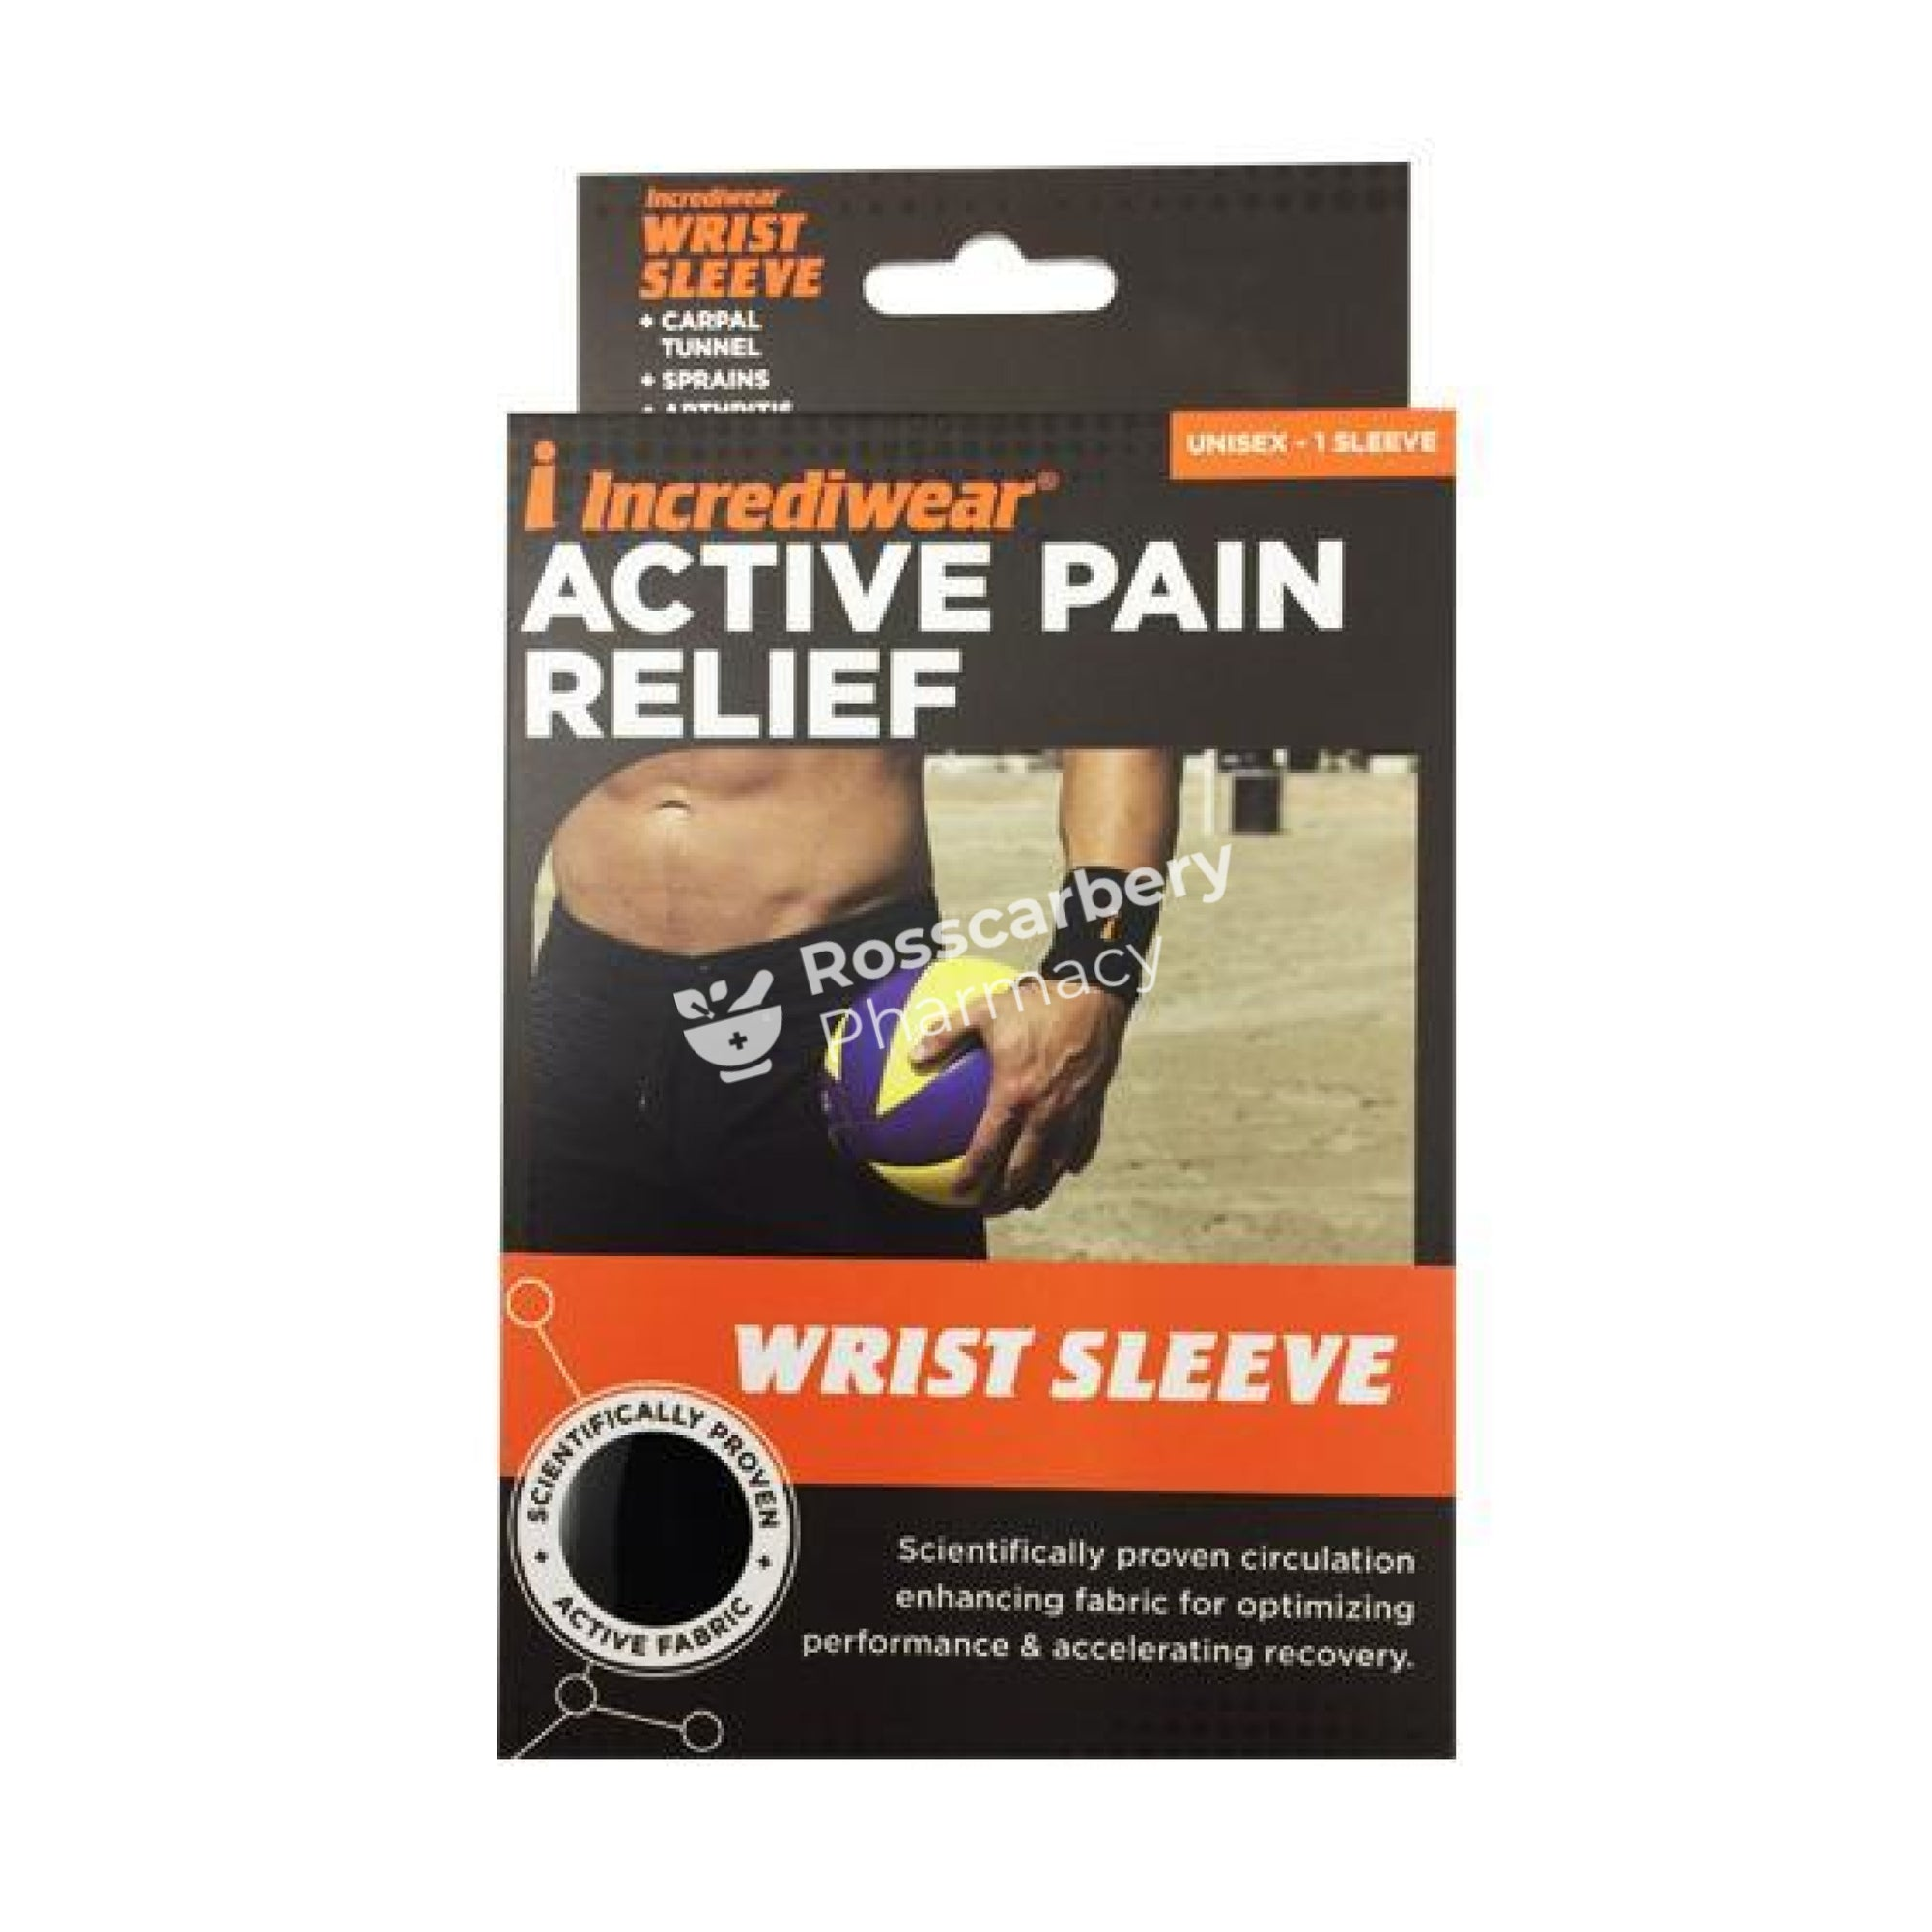 Incrediwear Active Recovery Wrist Sleeve - Black Supports & Compression Hoisery